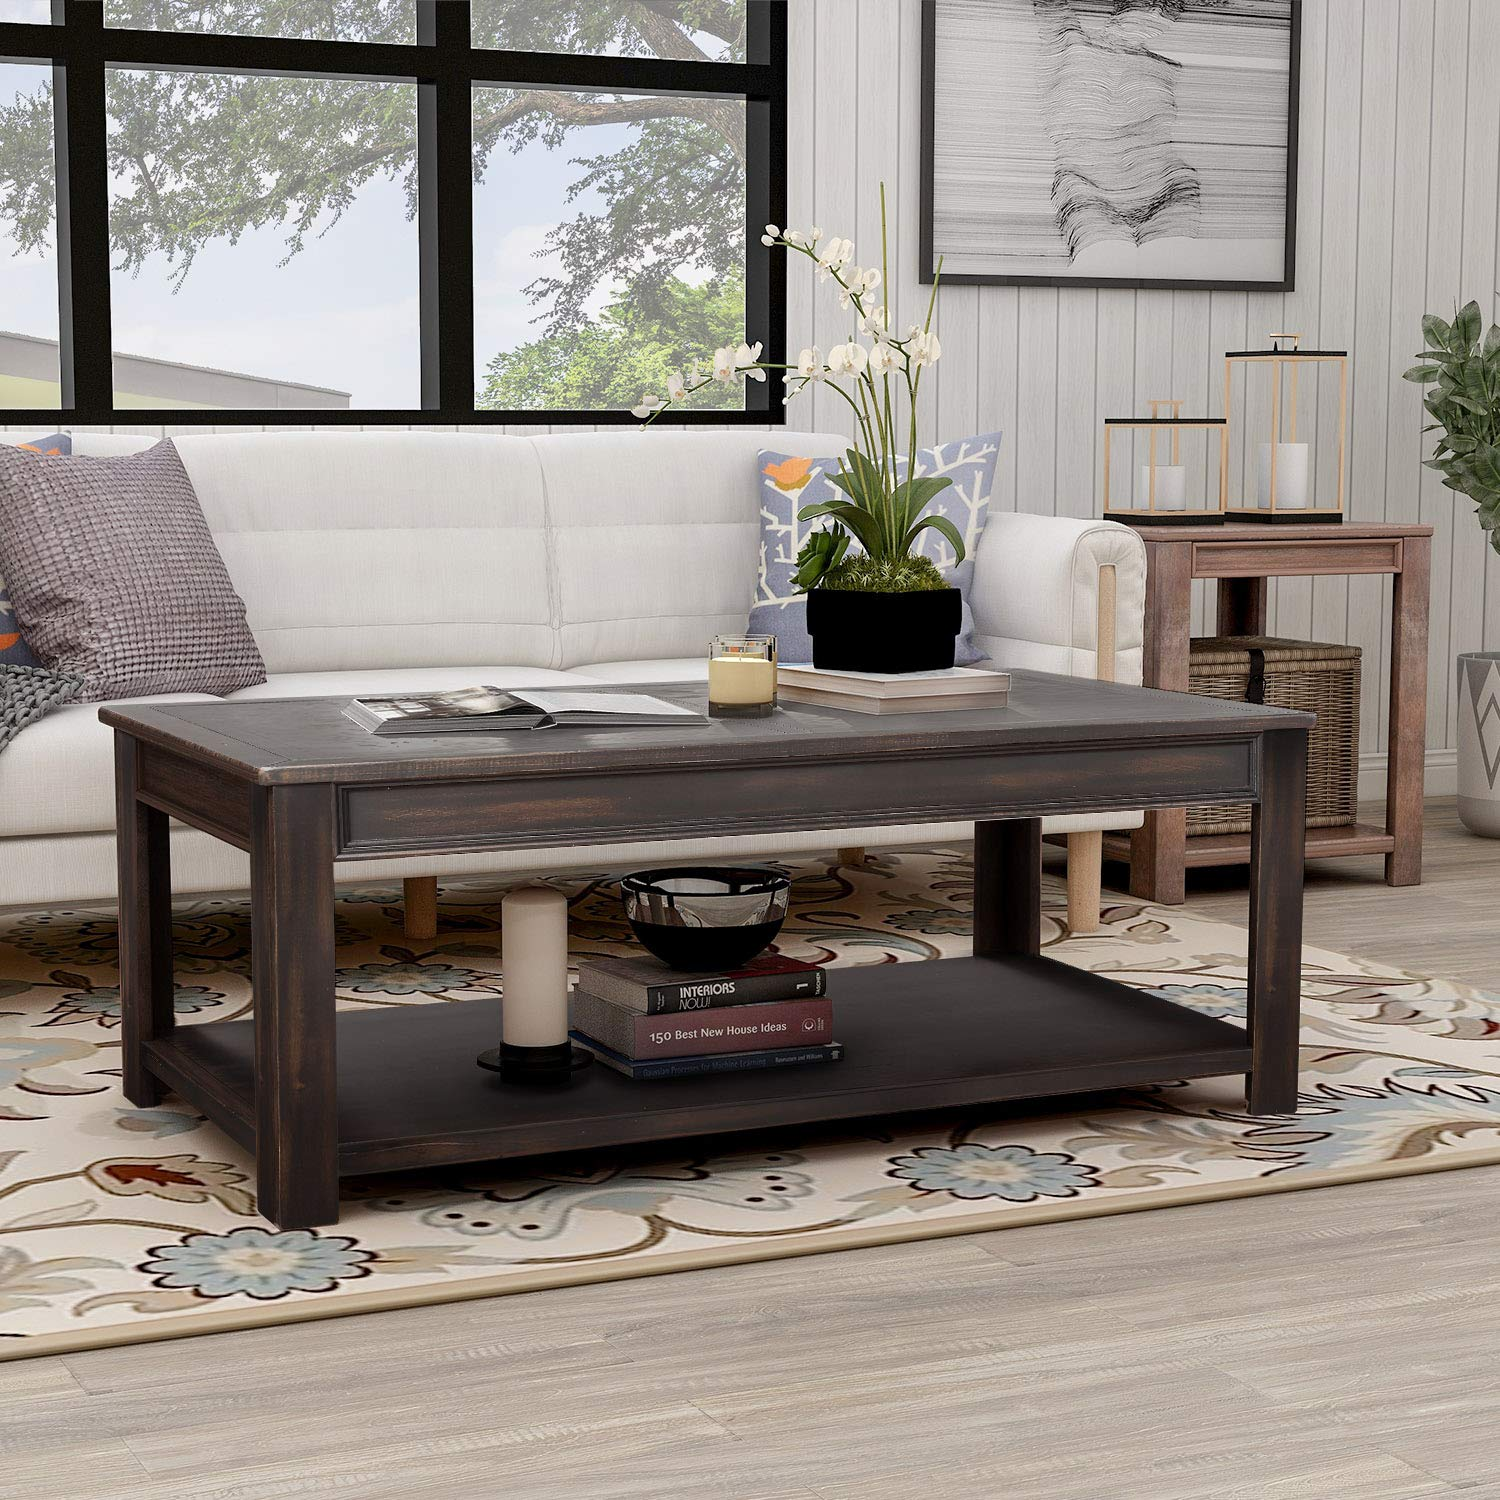 Merax Rectangle Coffee Table Rustic Style Solid Wood+MDF Coffee Table for Living Room with Open Shelf Easy Assembly by Merax